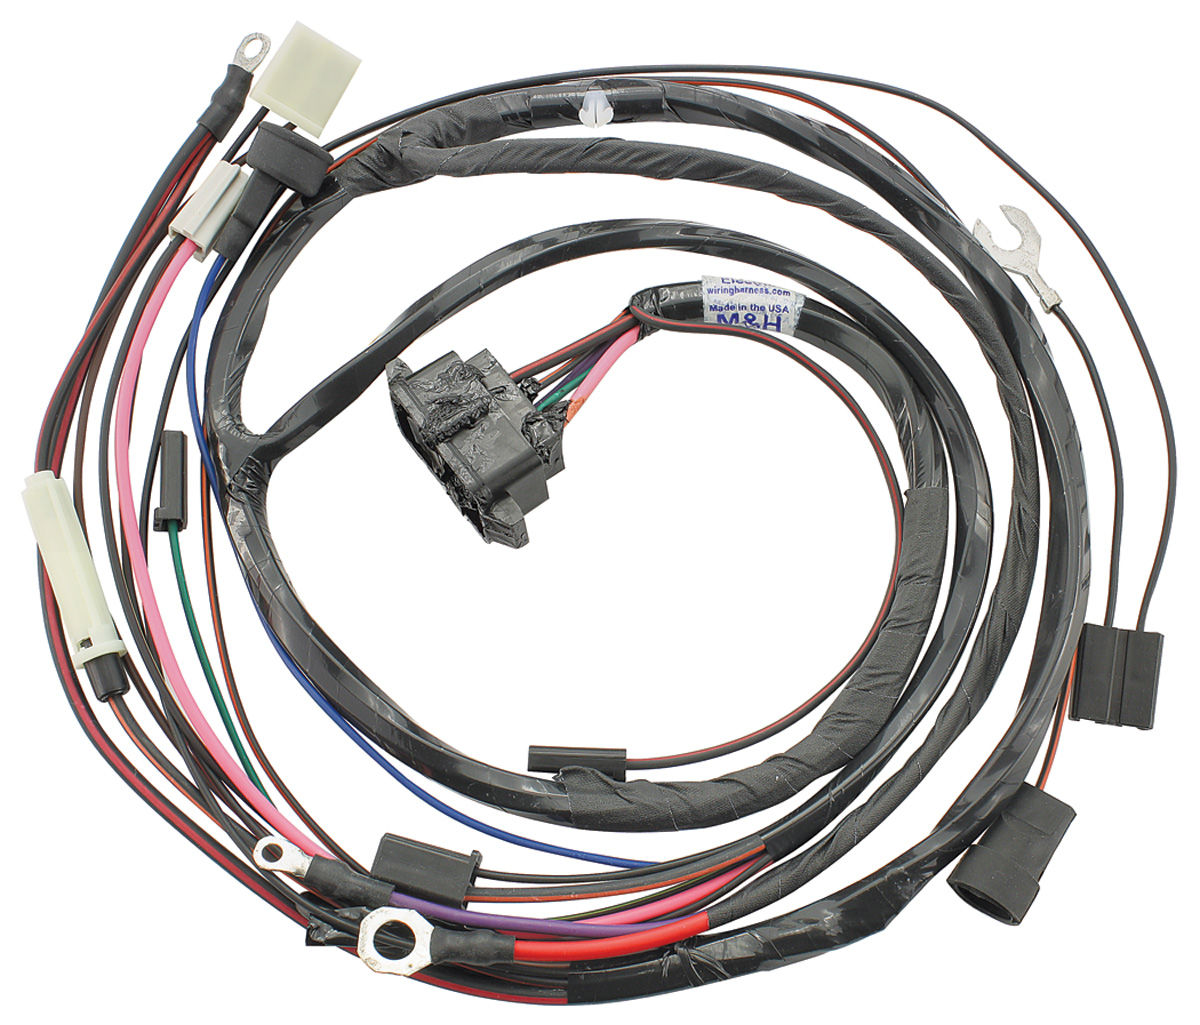 small resolution of 1967 gto engine harness for hei ignition v8 w ac si series int